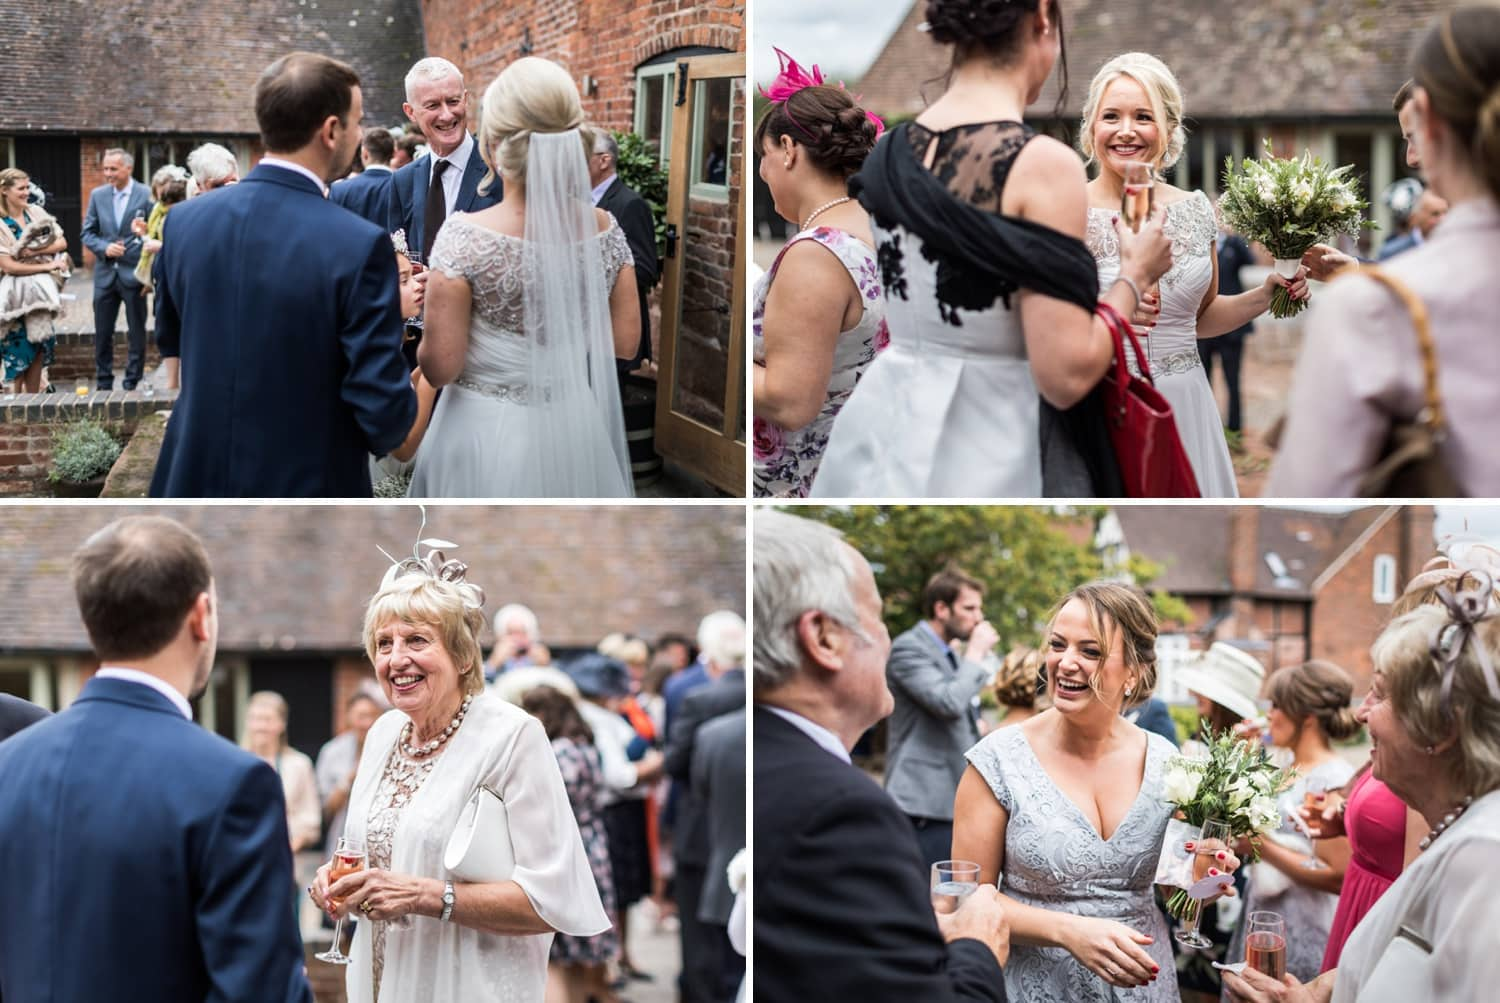 Wedding guests congratulate the bride and groom at Curradine Barns